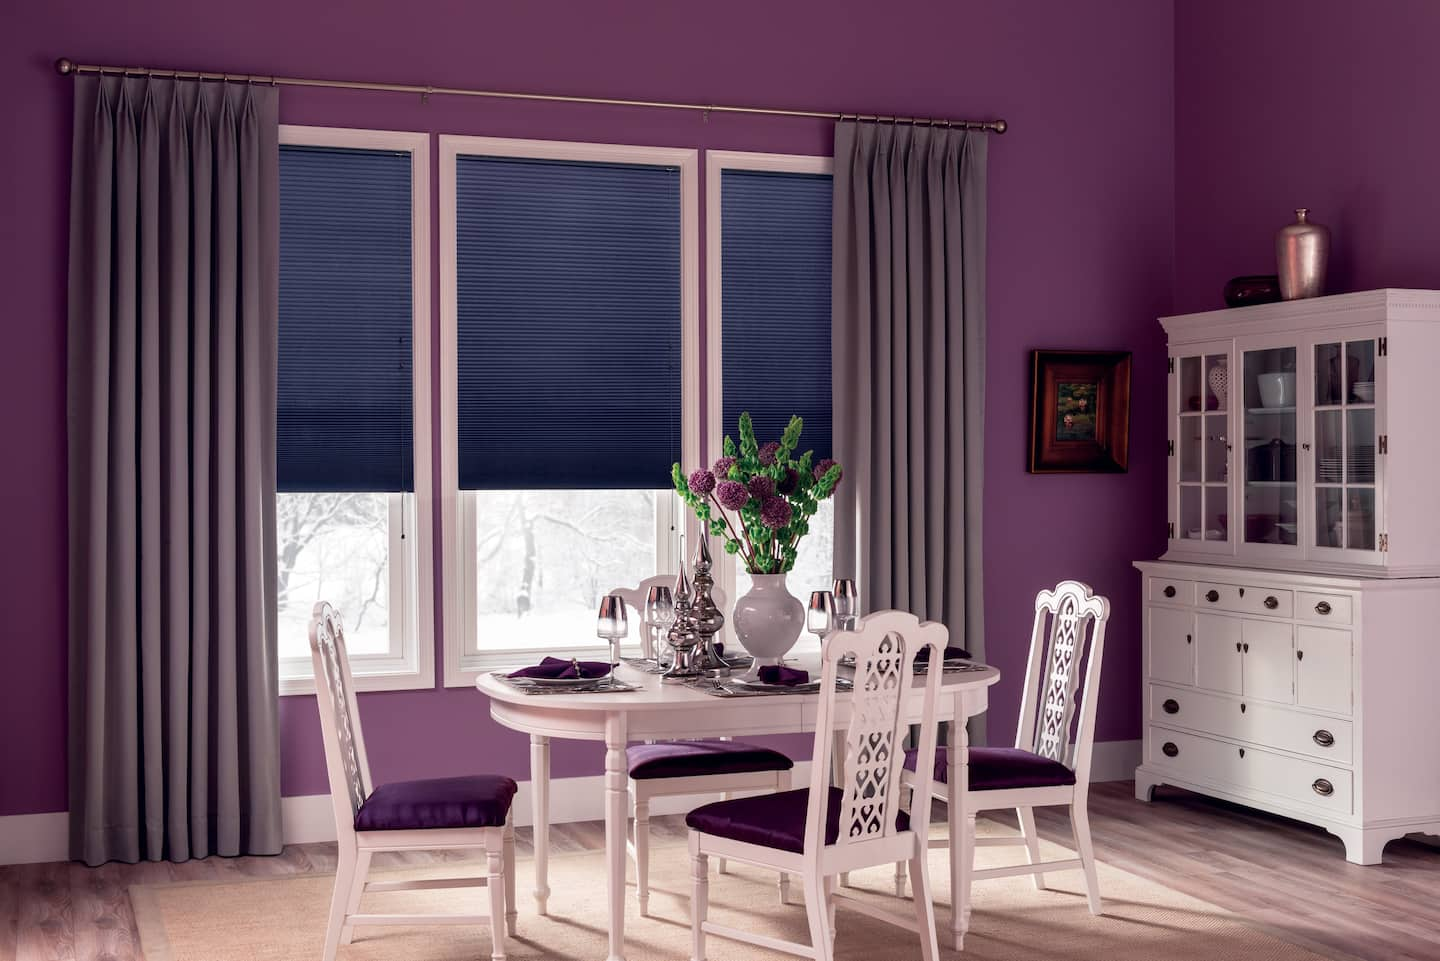 15 dining room curtains ideas | angie's list